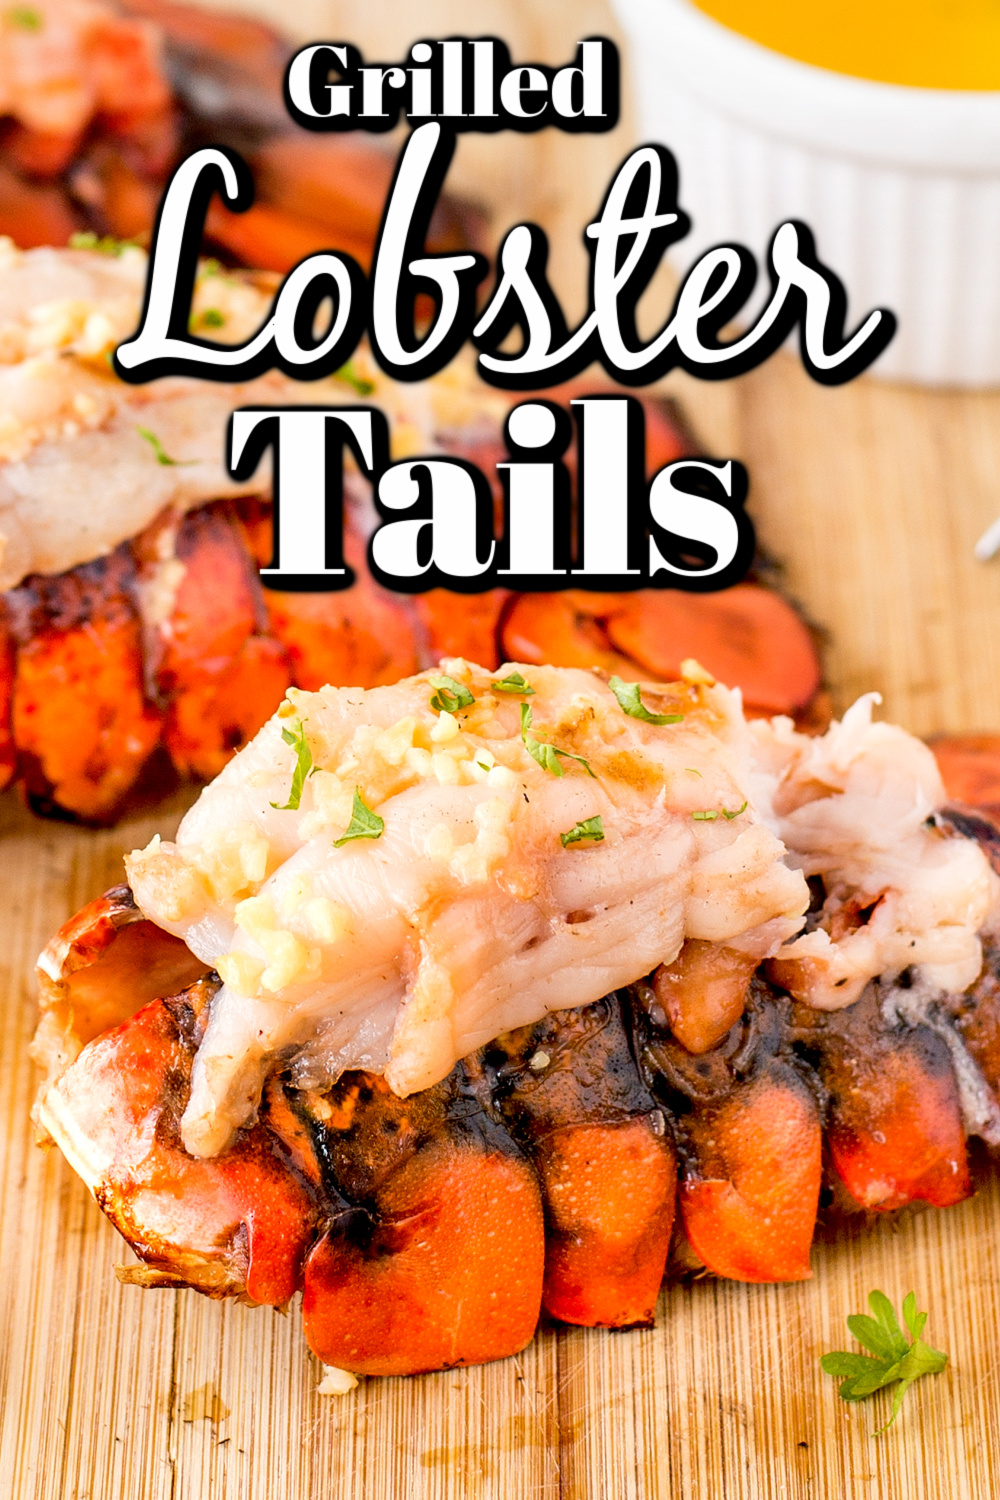 Grilled Lobster Tails are perfect for a summer dinner from the BBQ!